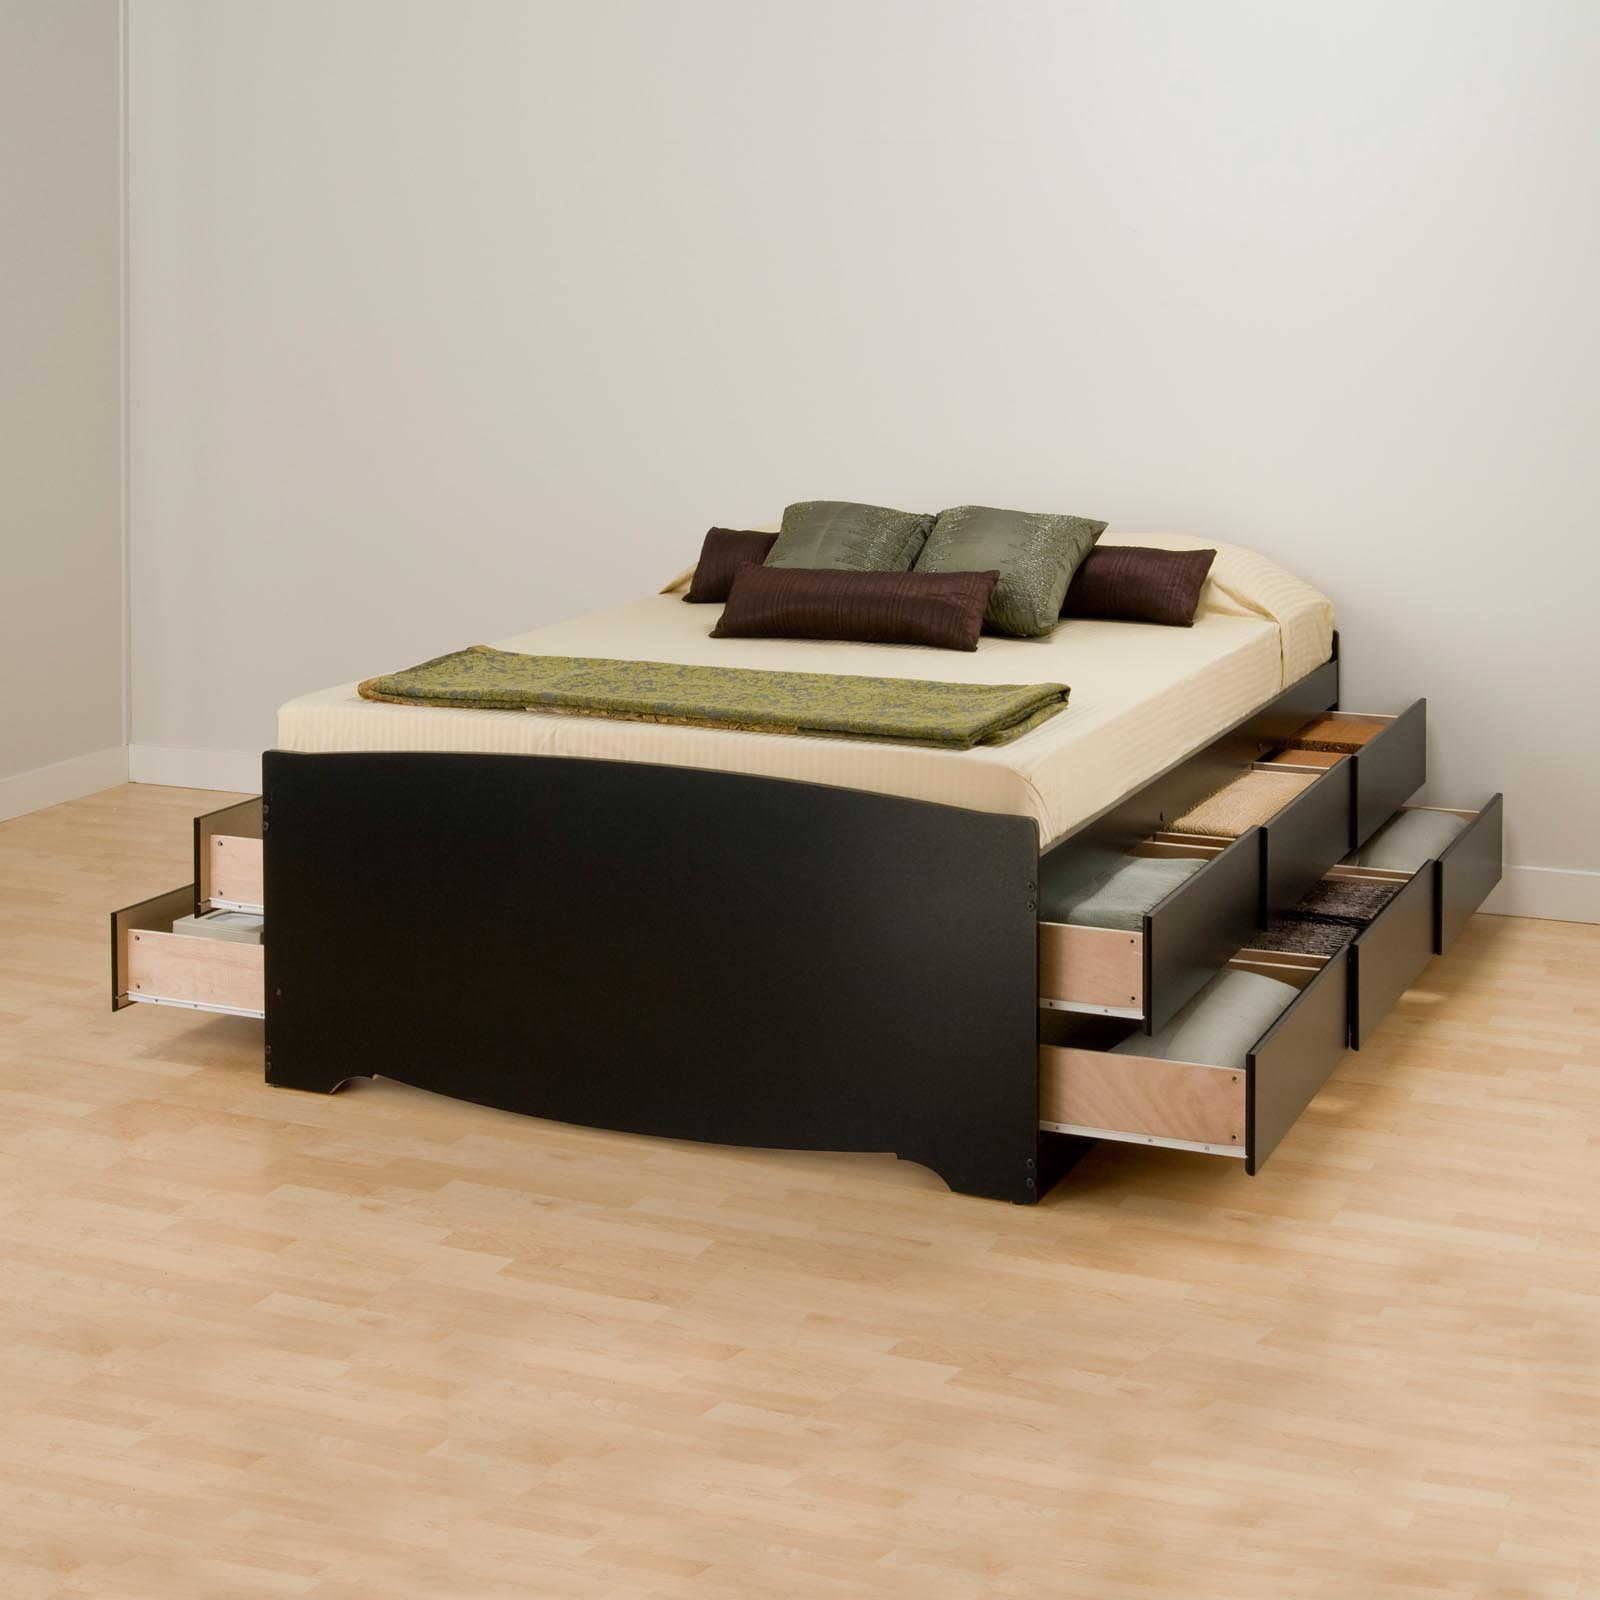 Tall Storage Platform Bed - Platform Beds at Hayneedle